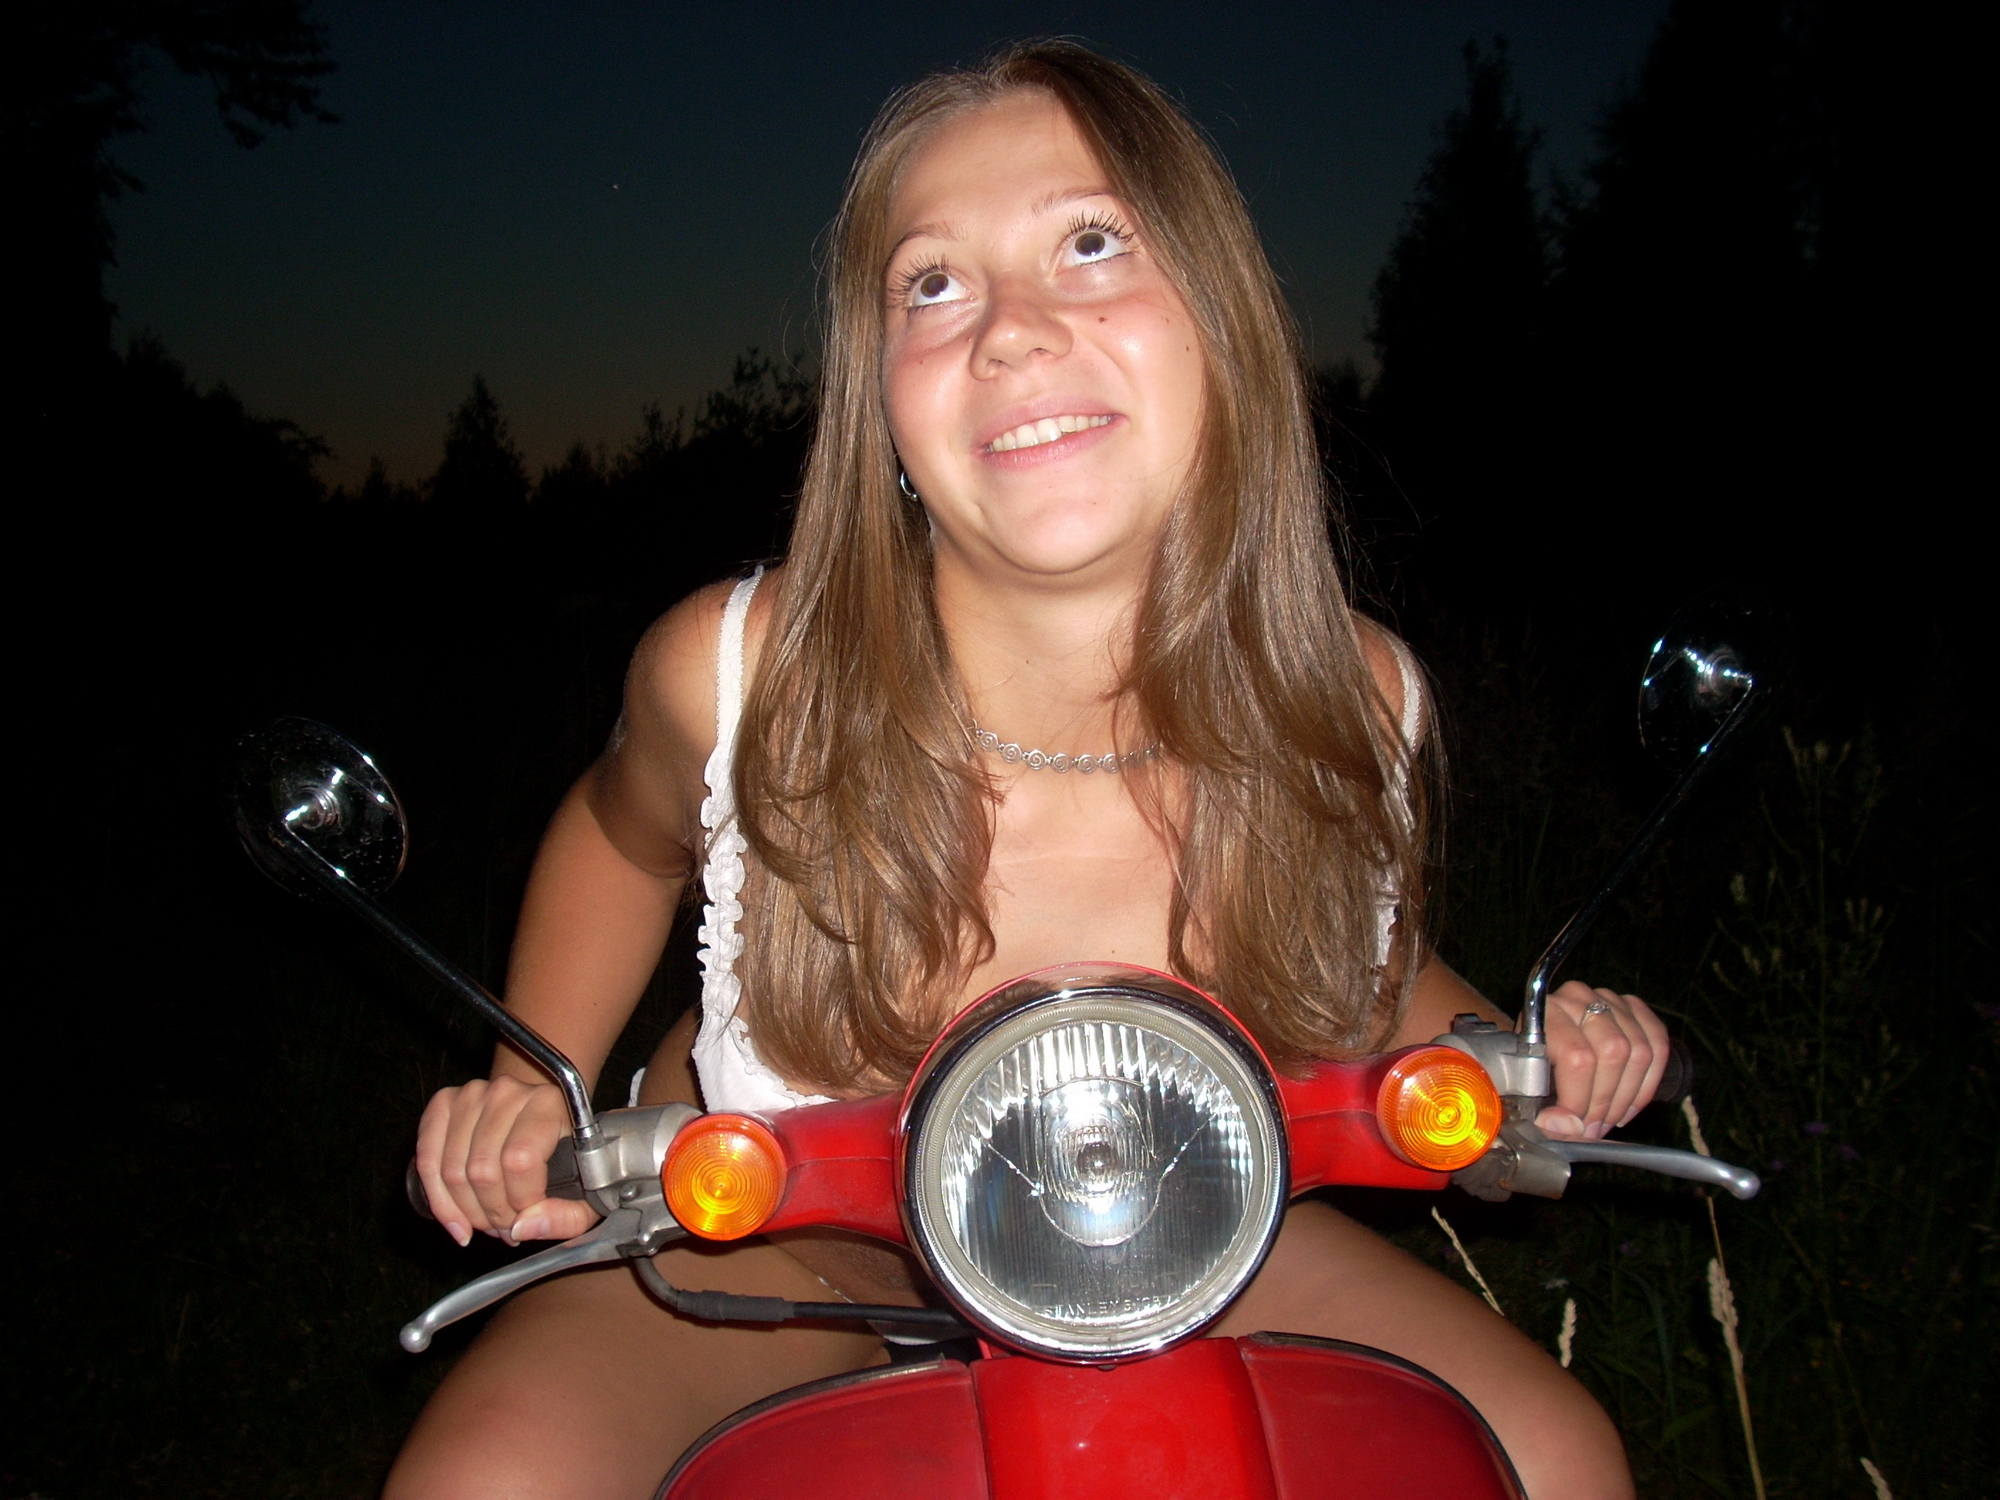 chubby-amateur-girl-nude-outdoor-tits-ass-12